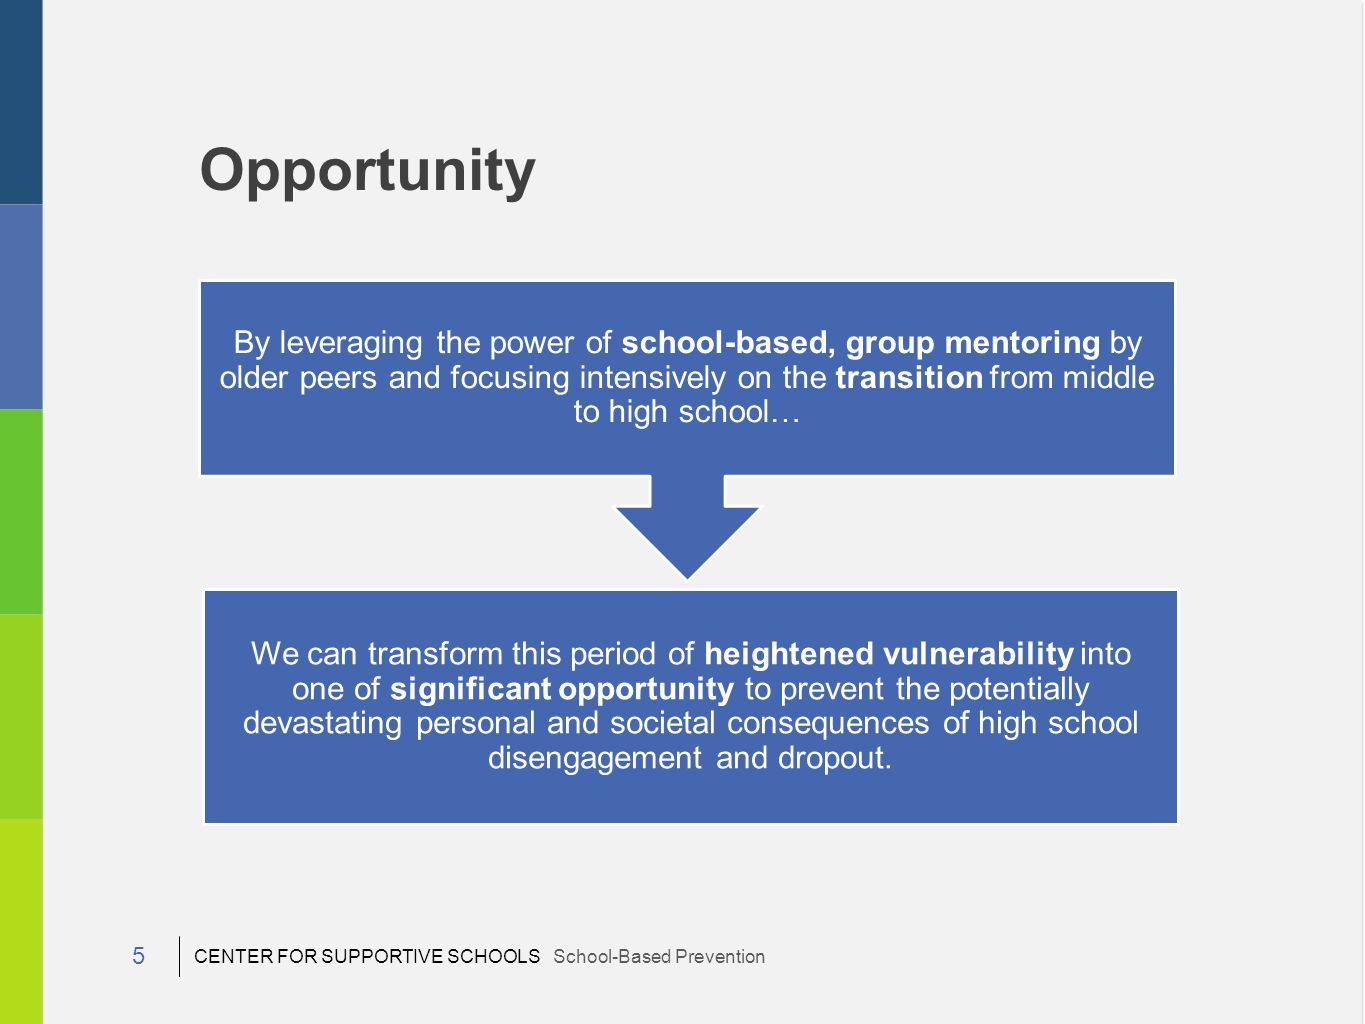 CENTER FOR SUPPORTIVE SCHOOLS School-Based Prevention Opportunity By leveraging the power of school-based, group mentoring by older peers and focusing intensively on the transition from middle to high school… We can transform this period of heightened vulnerability into one of significant opportunity to prevent the potentially devastating personal and societal consequences of high school disengagement and dropout.